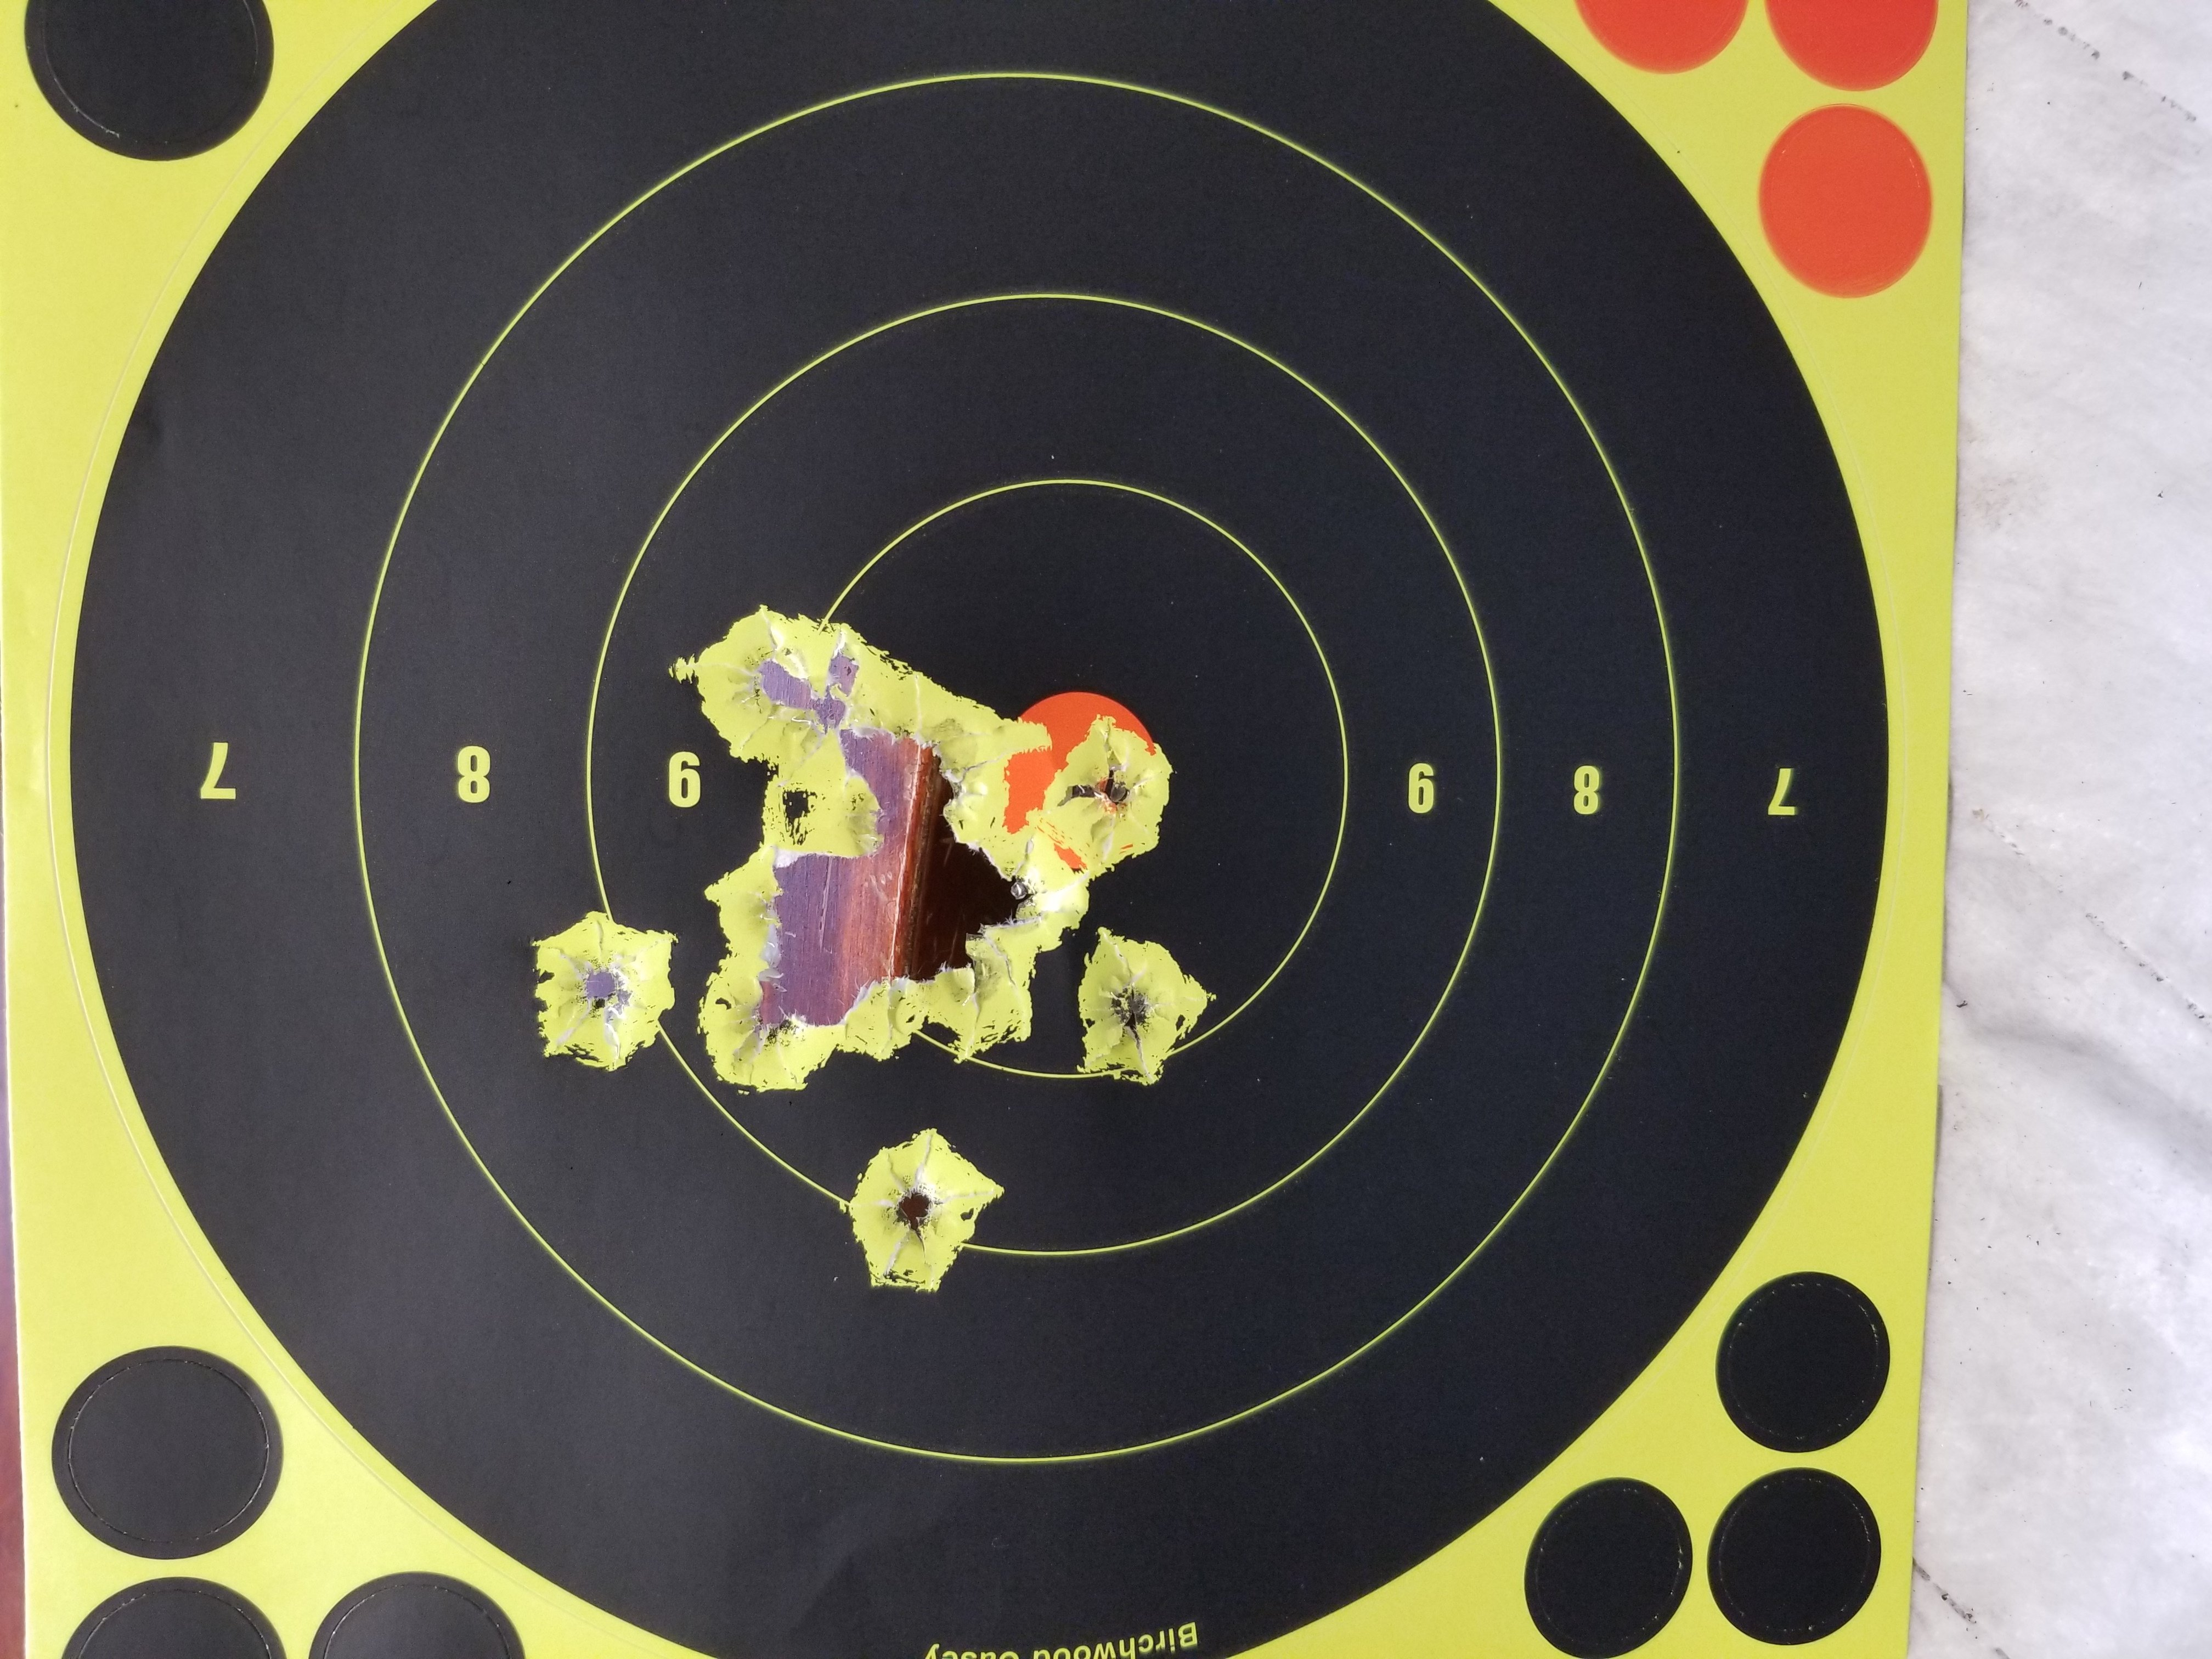 Accu Shadow 17 Rds 25 Yds.jpg